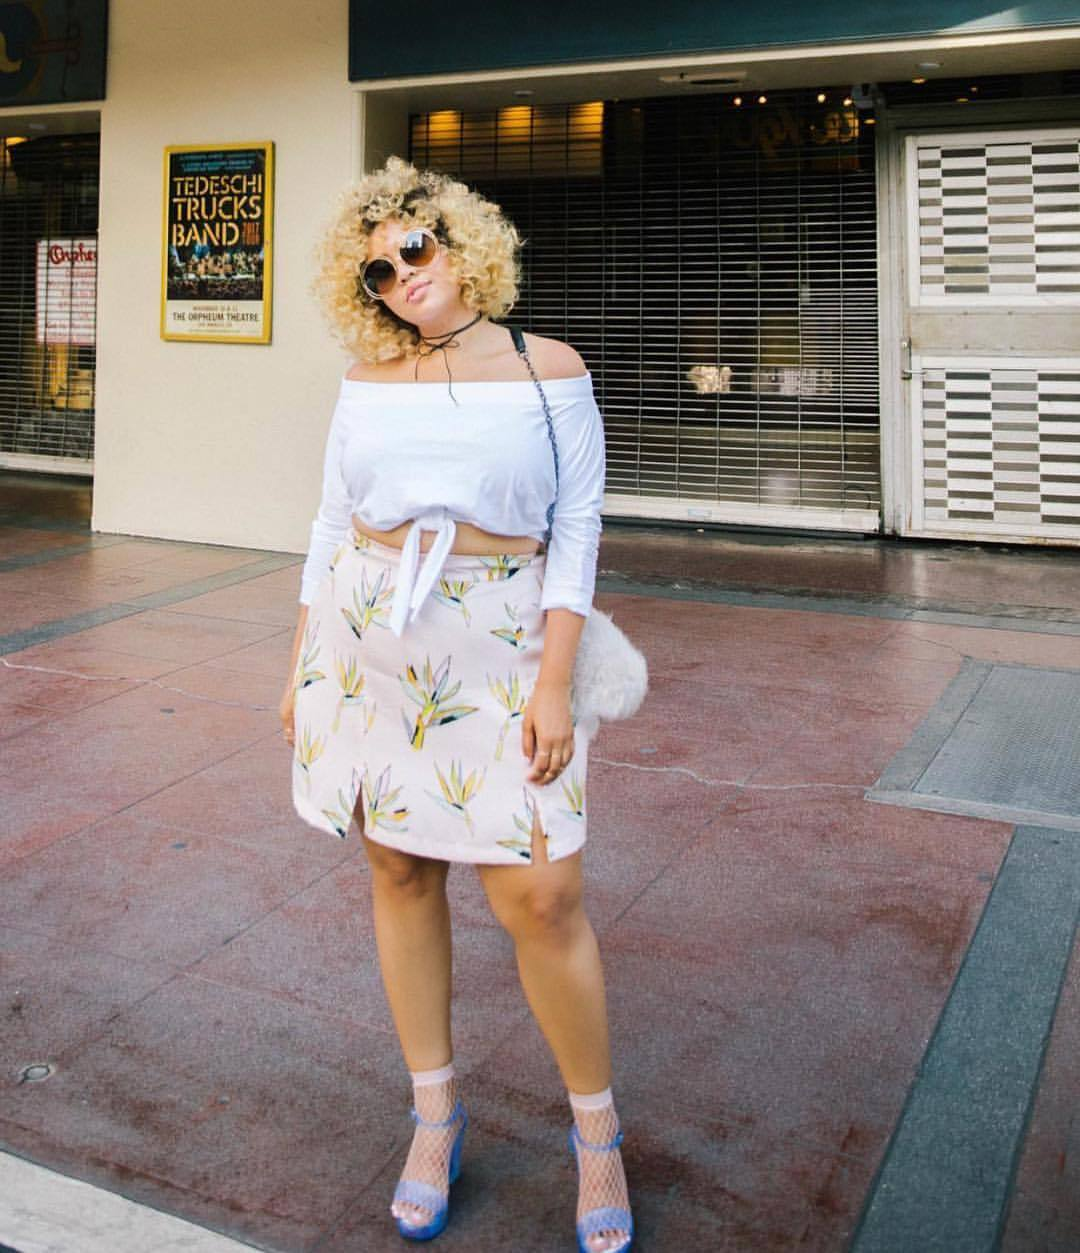 plus size lady wearing a floral dress, white top and shoes